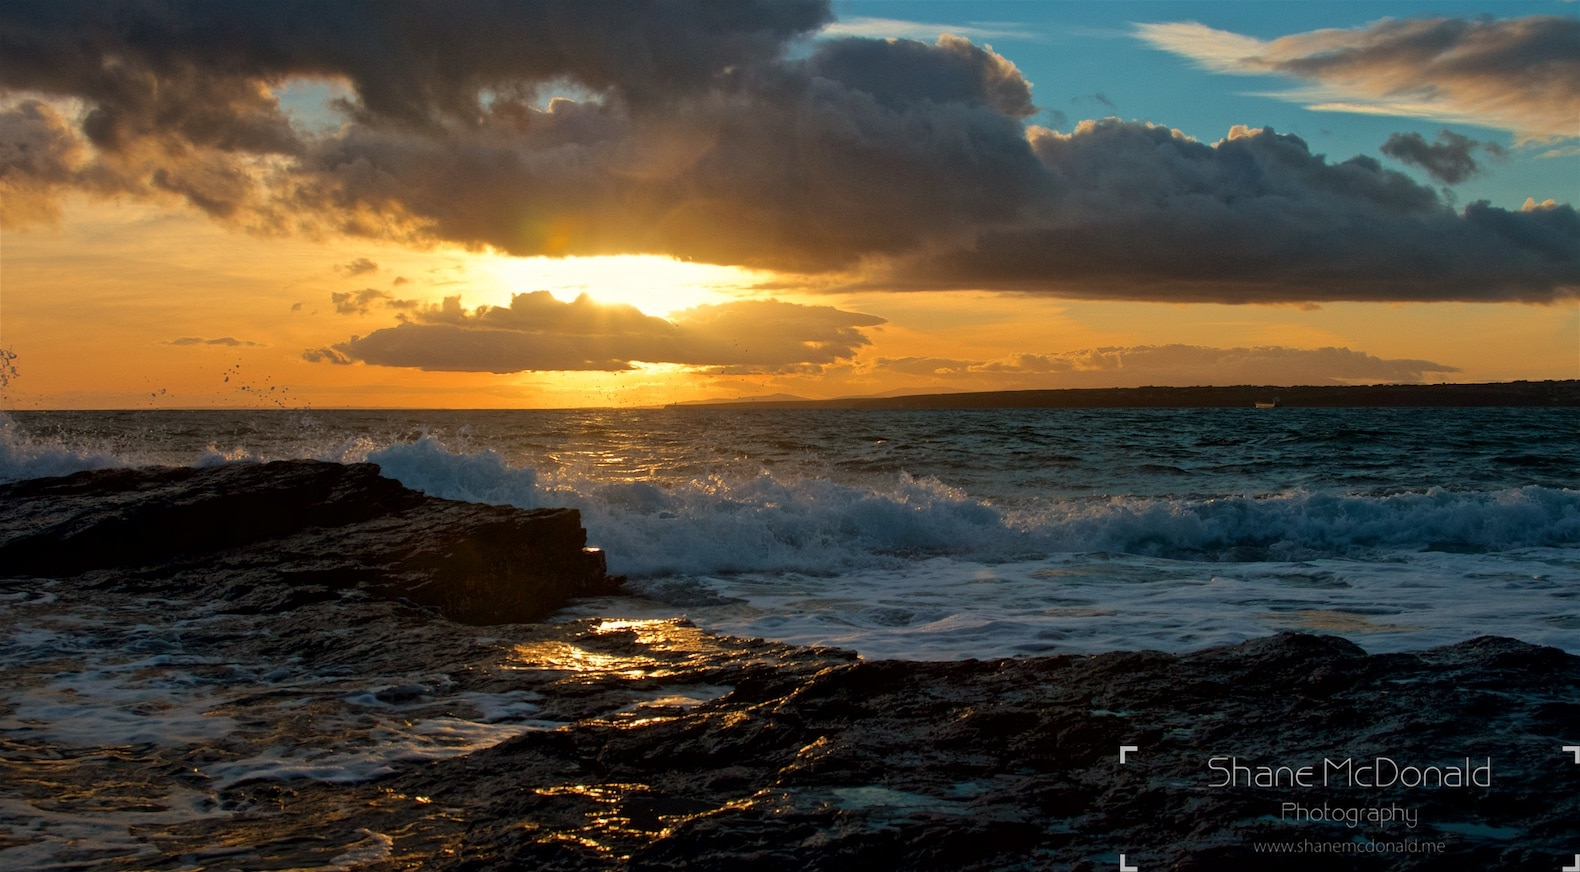 Sunset at Hook Head, Co. Wexford, Ireland